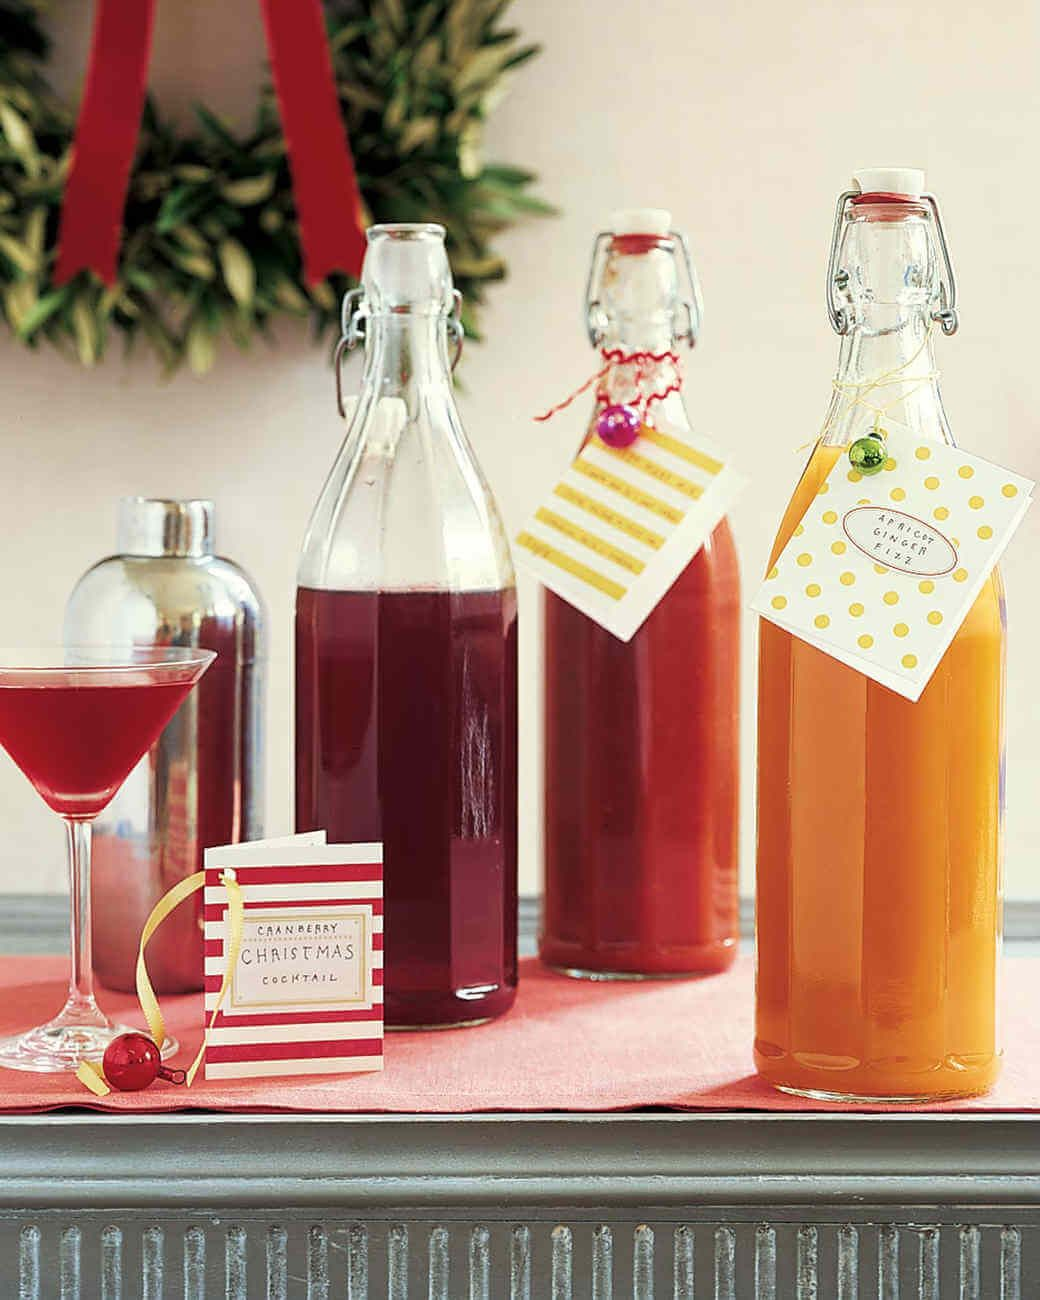 50 Diy Wine Bottle Craft Upcycling Ideas With Images Homemade Food Gifts Holiday Entertaining Edible Gifts